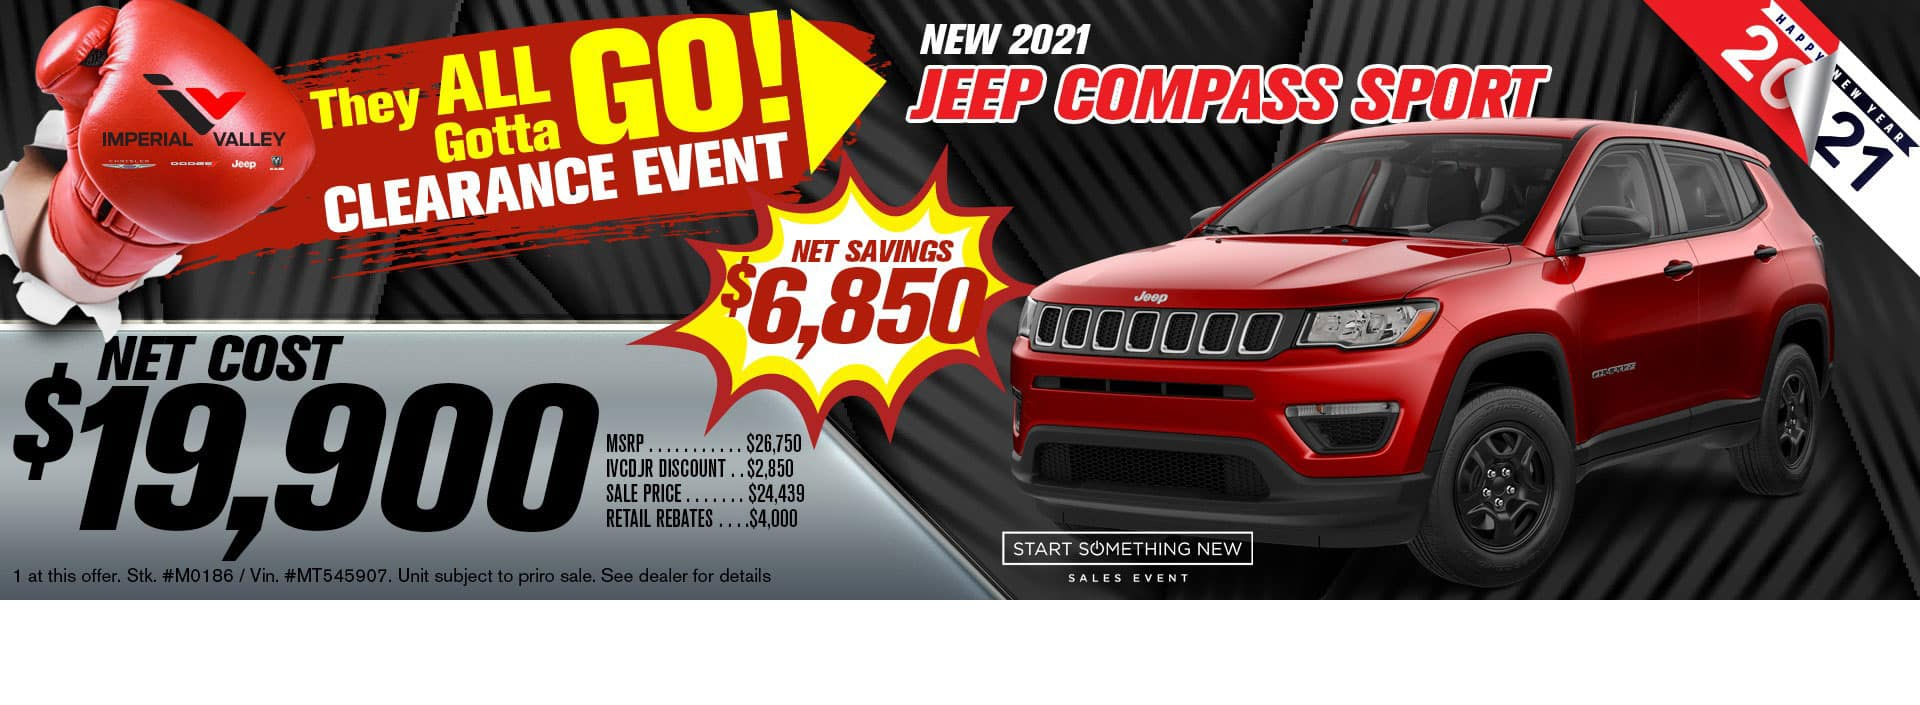 Jeep-Compass-Sale-705